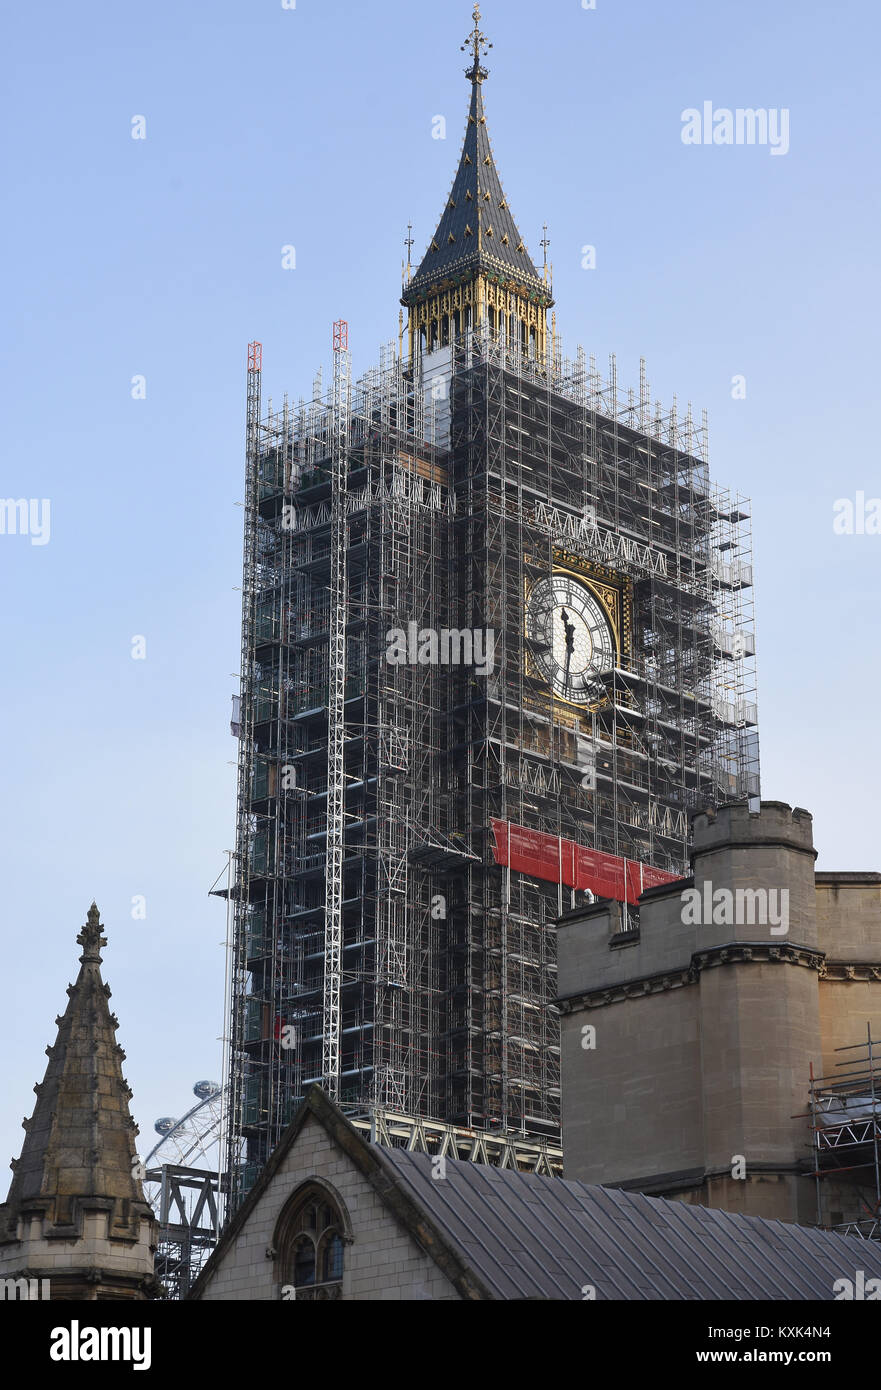 Scaffolding envelopes Big Ben as renovation work continues, Houses of Parliament,Westminster,London.UK Stock Photo